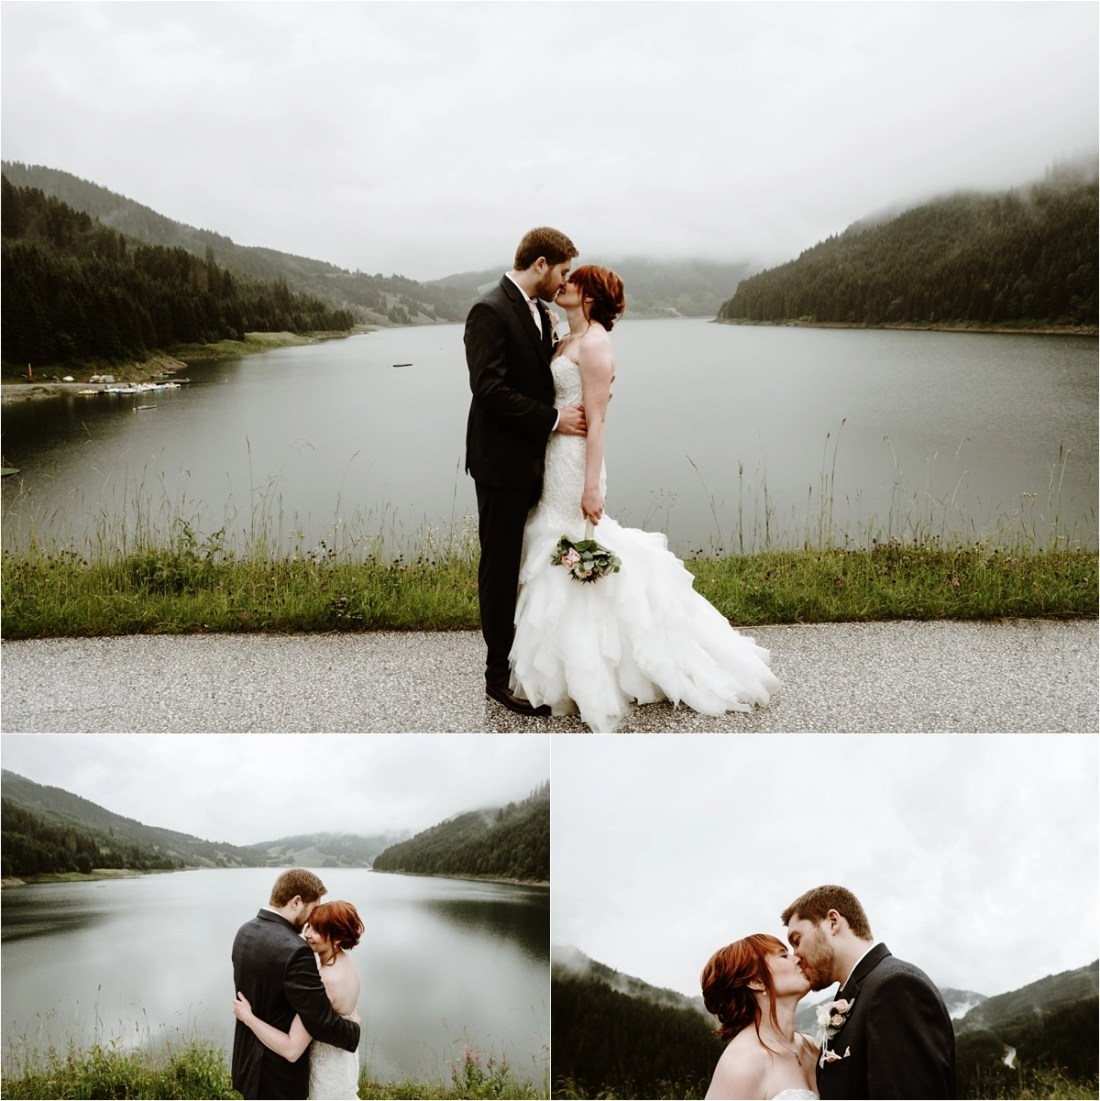 The bride and groom kiss in front of a large lake in Gerlos Austria after their mountain chalet wedding in the Alps. Photos by Wild Connections Photography